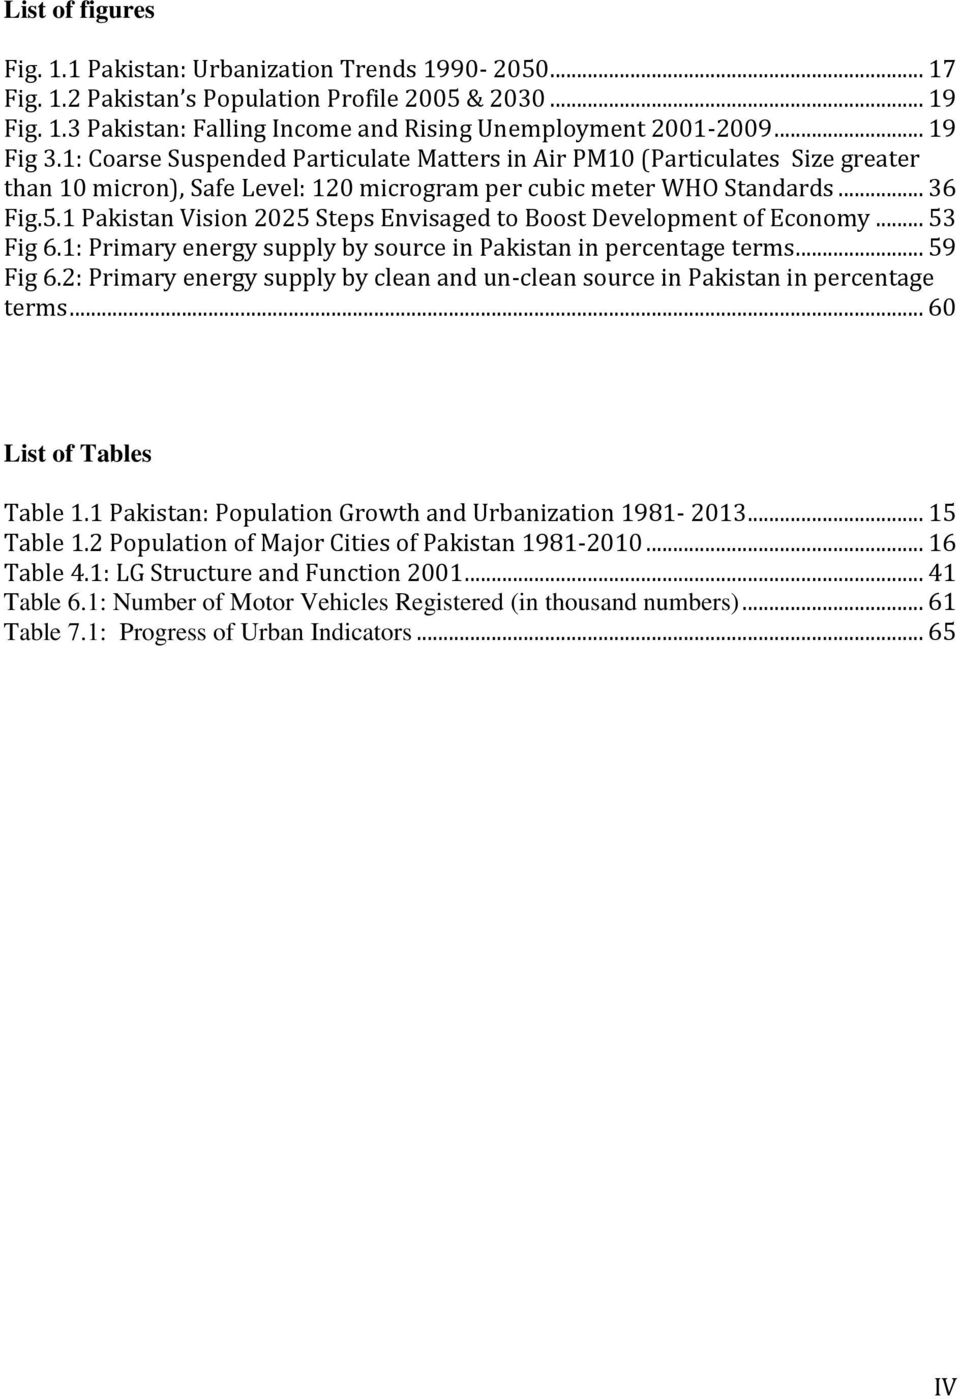 1 Pakistan Vision 2025 Steps Envisaged to Boost Development of Economy... 53 Fig 6.1: Primary energy supply by source in Pakistan in percentage terms... 59 Fig 6.